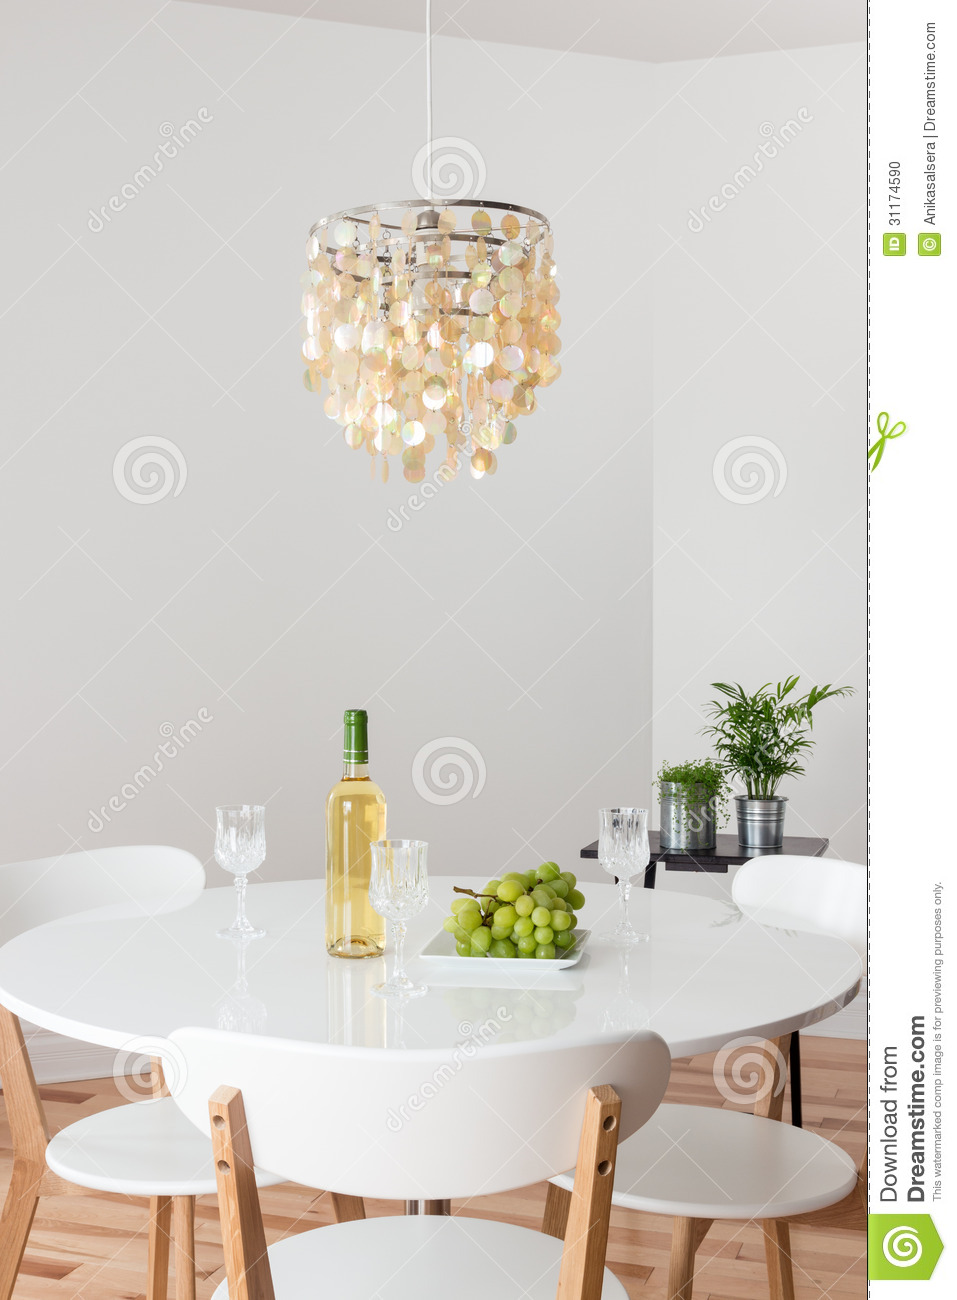 Room With Decorative Chandelier And White Round Table Stock Photo Image